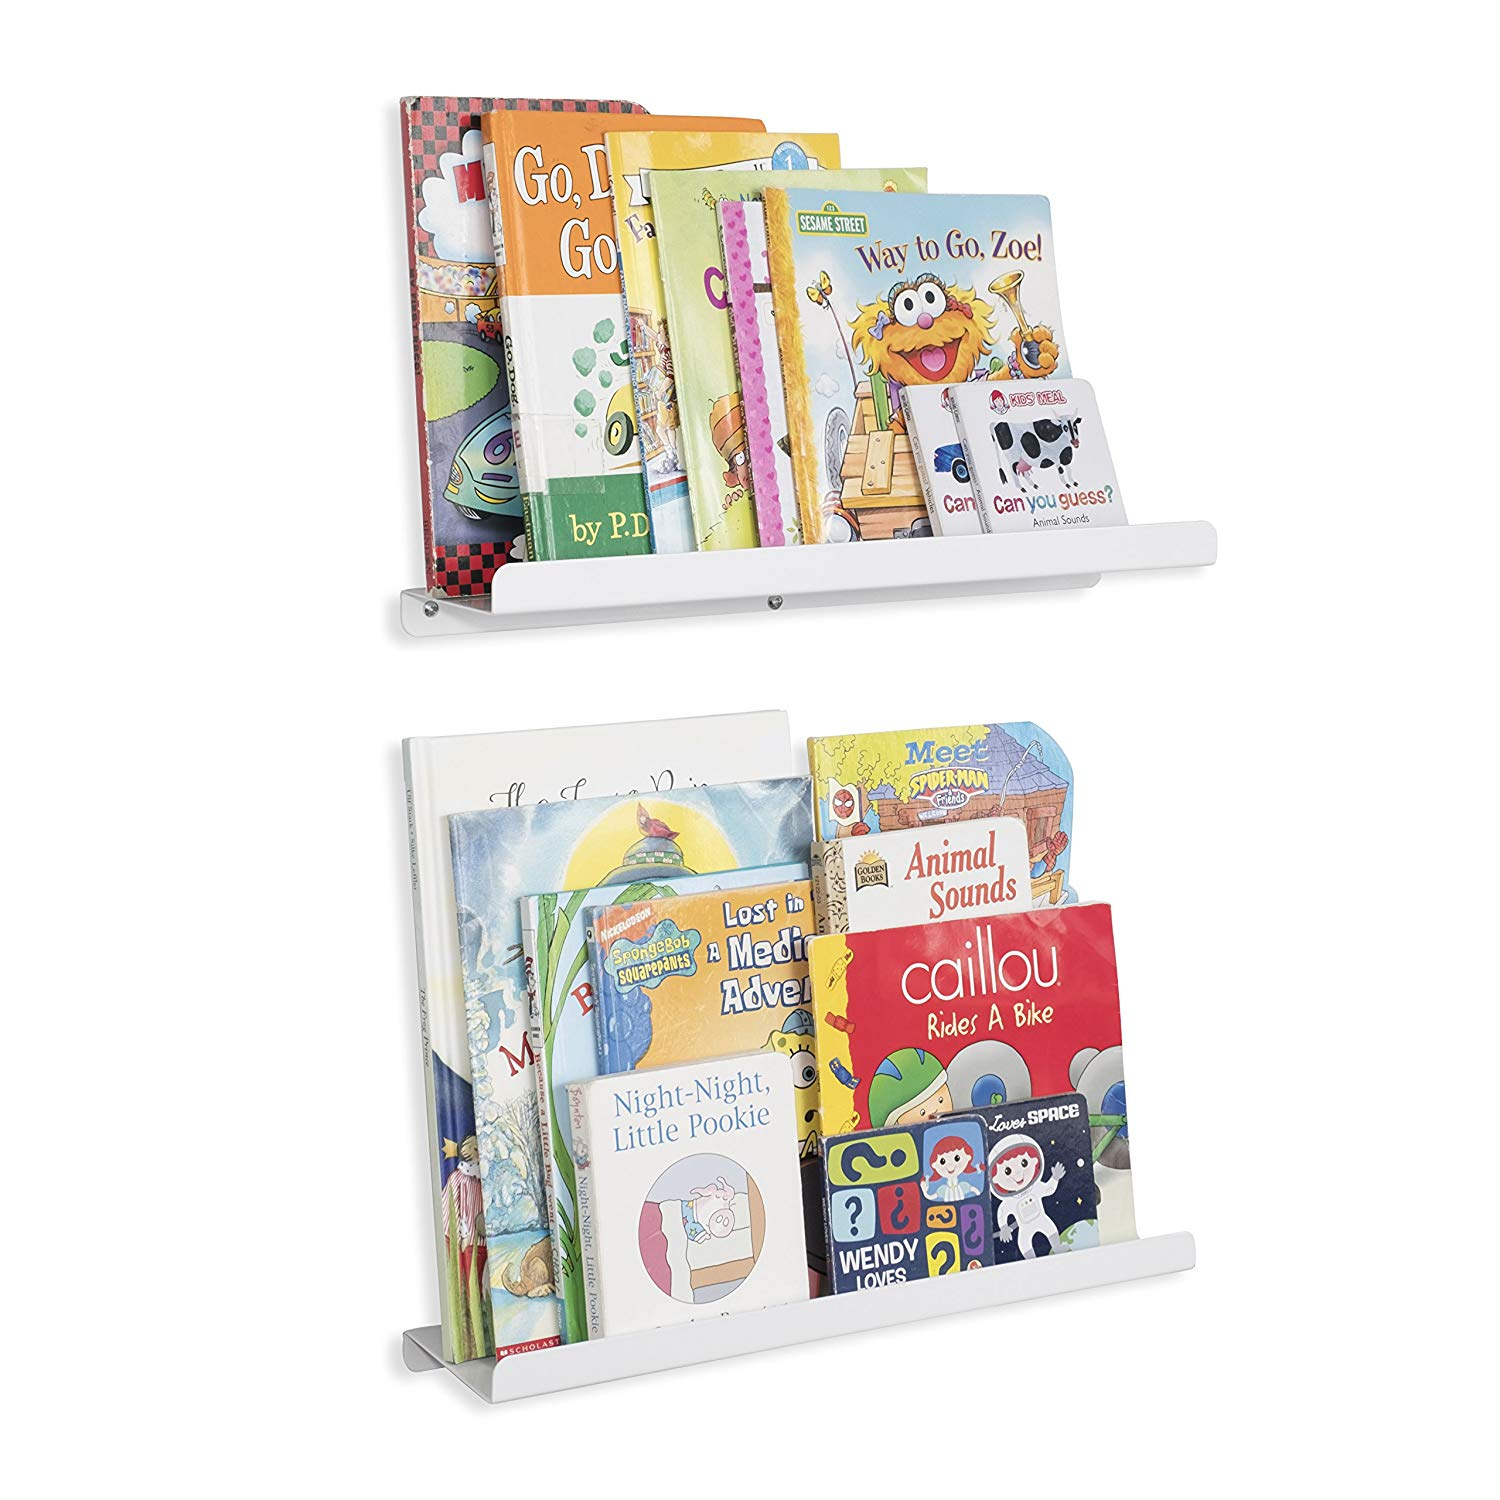 wallniture kids floating bookshelves nursery room decor bookcase display metal ledges inch set white home kitchen tree coat stand corona dressing table and stool ikea lack book